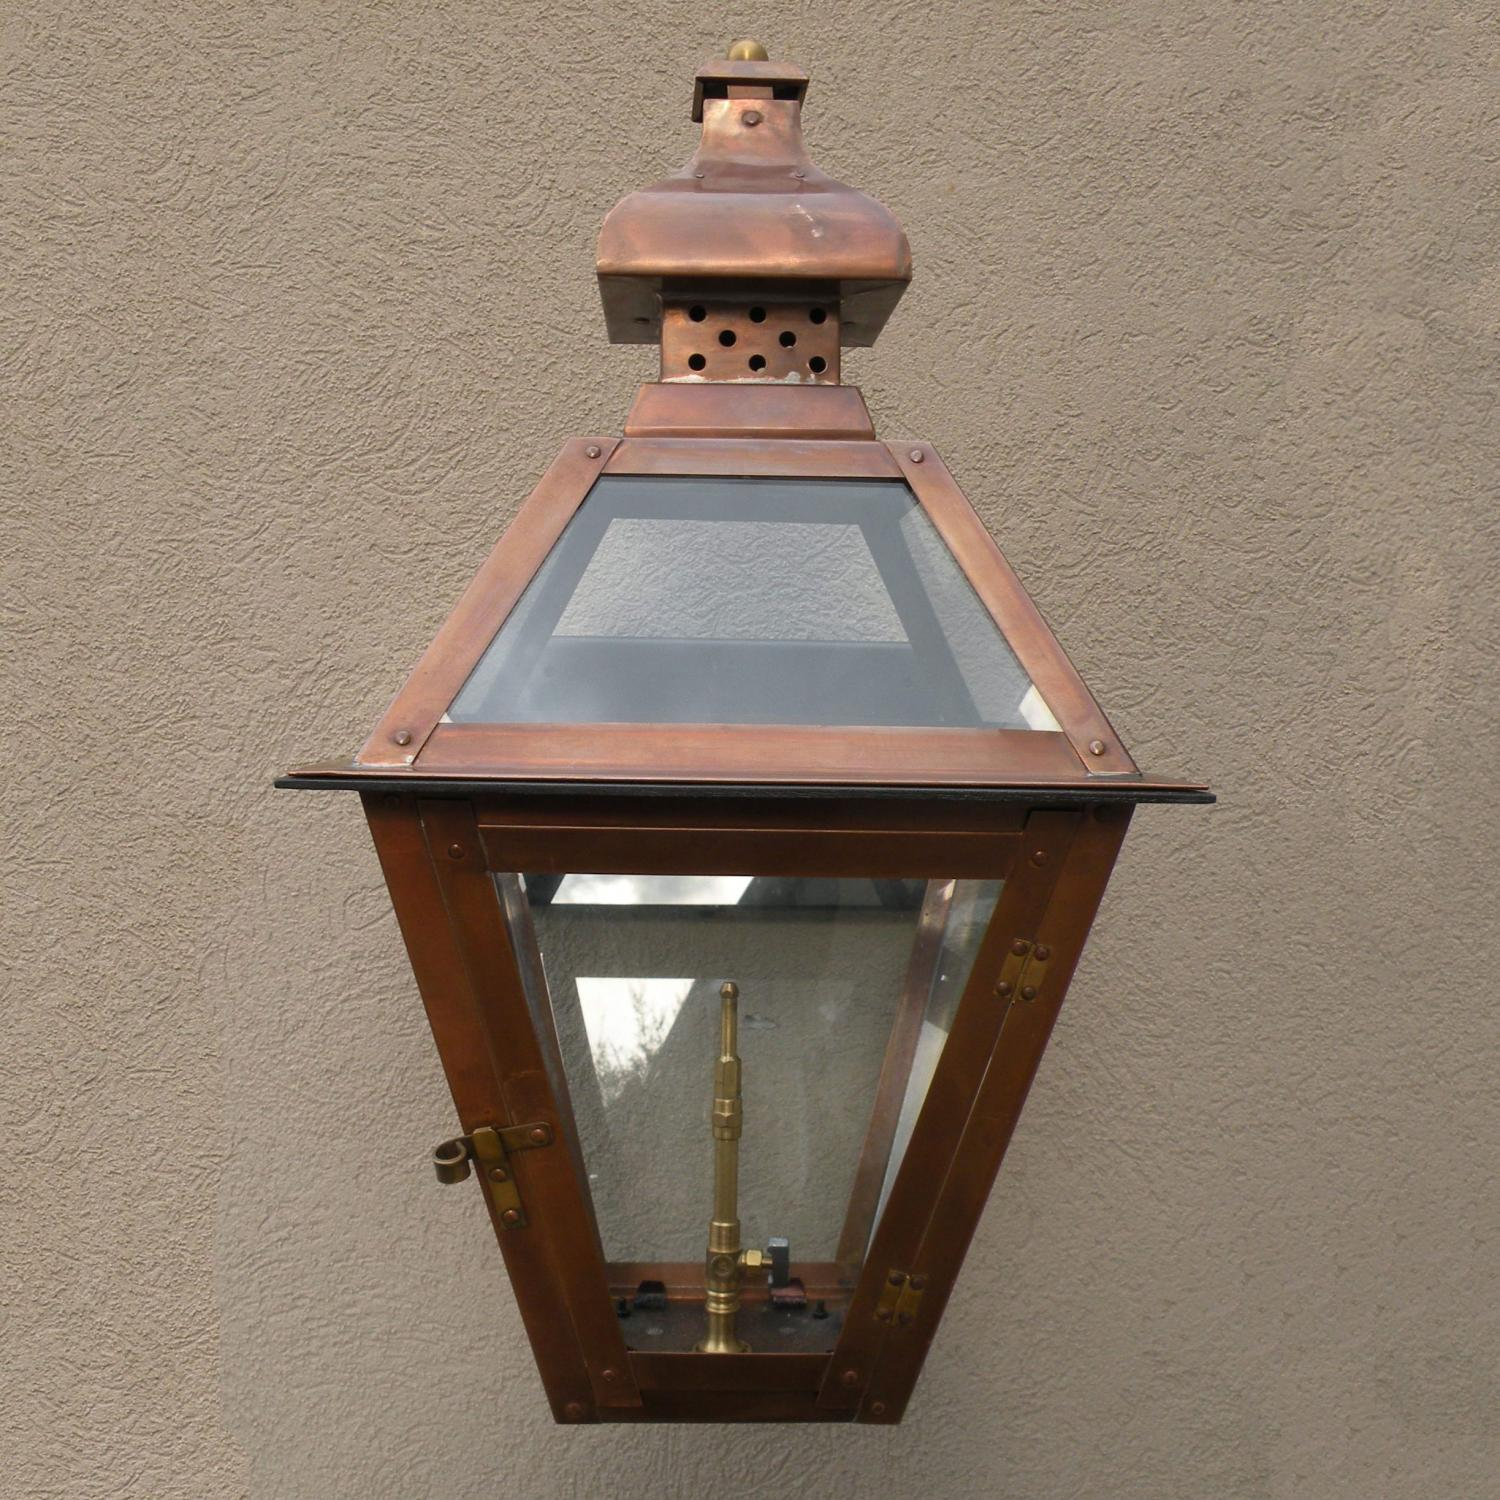 Regency GL20 Regenia Rue Propane Gas Light With Open Flame Burner And Manual Ignition On Decorative Corner Wall Mount